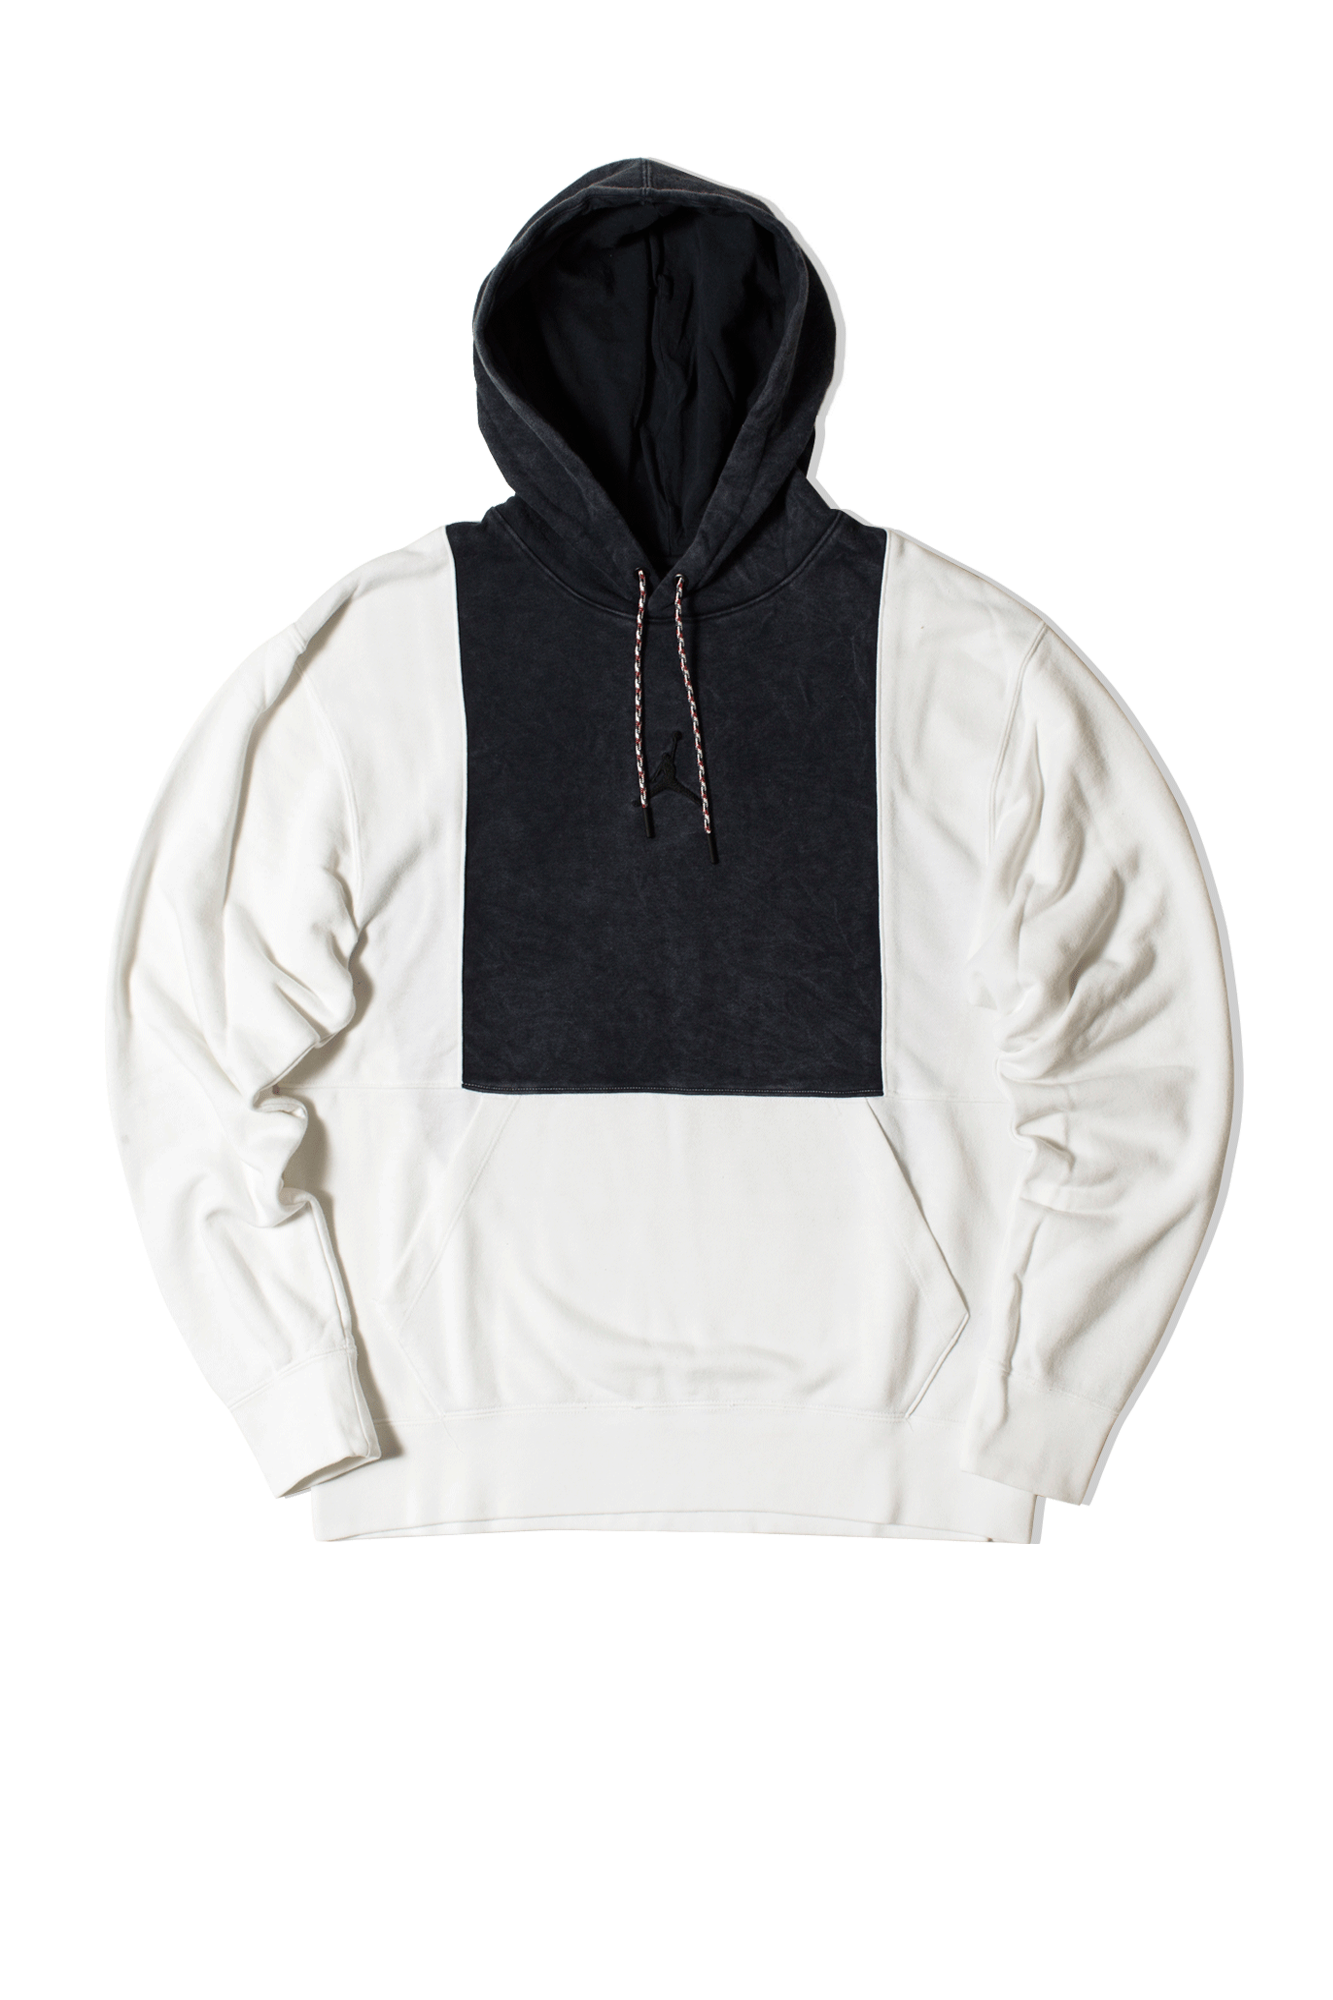 M J Lgc 1 Po Hooded Sweatshirt Bianco